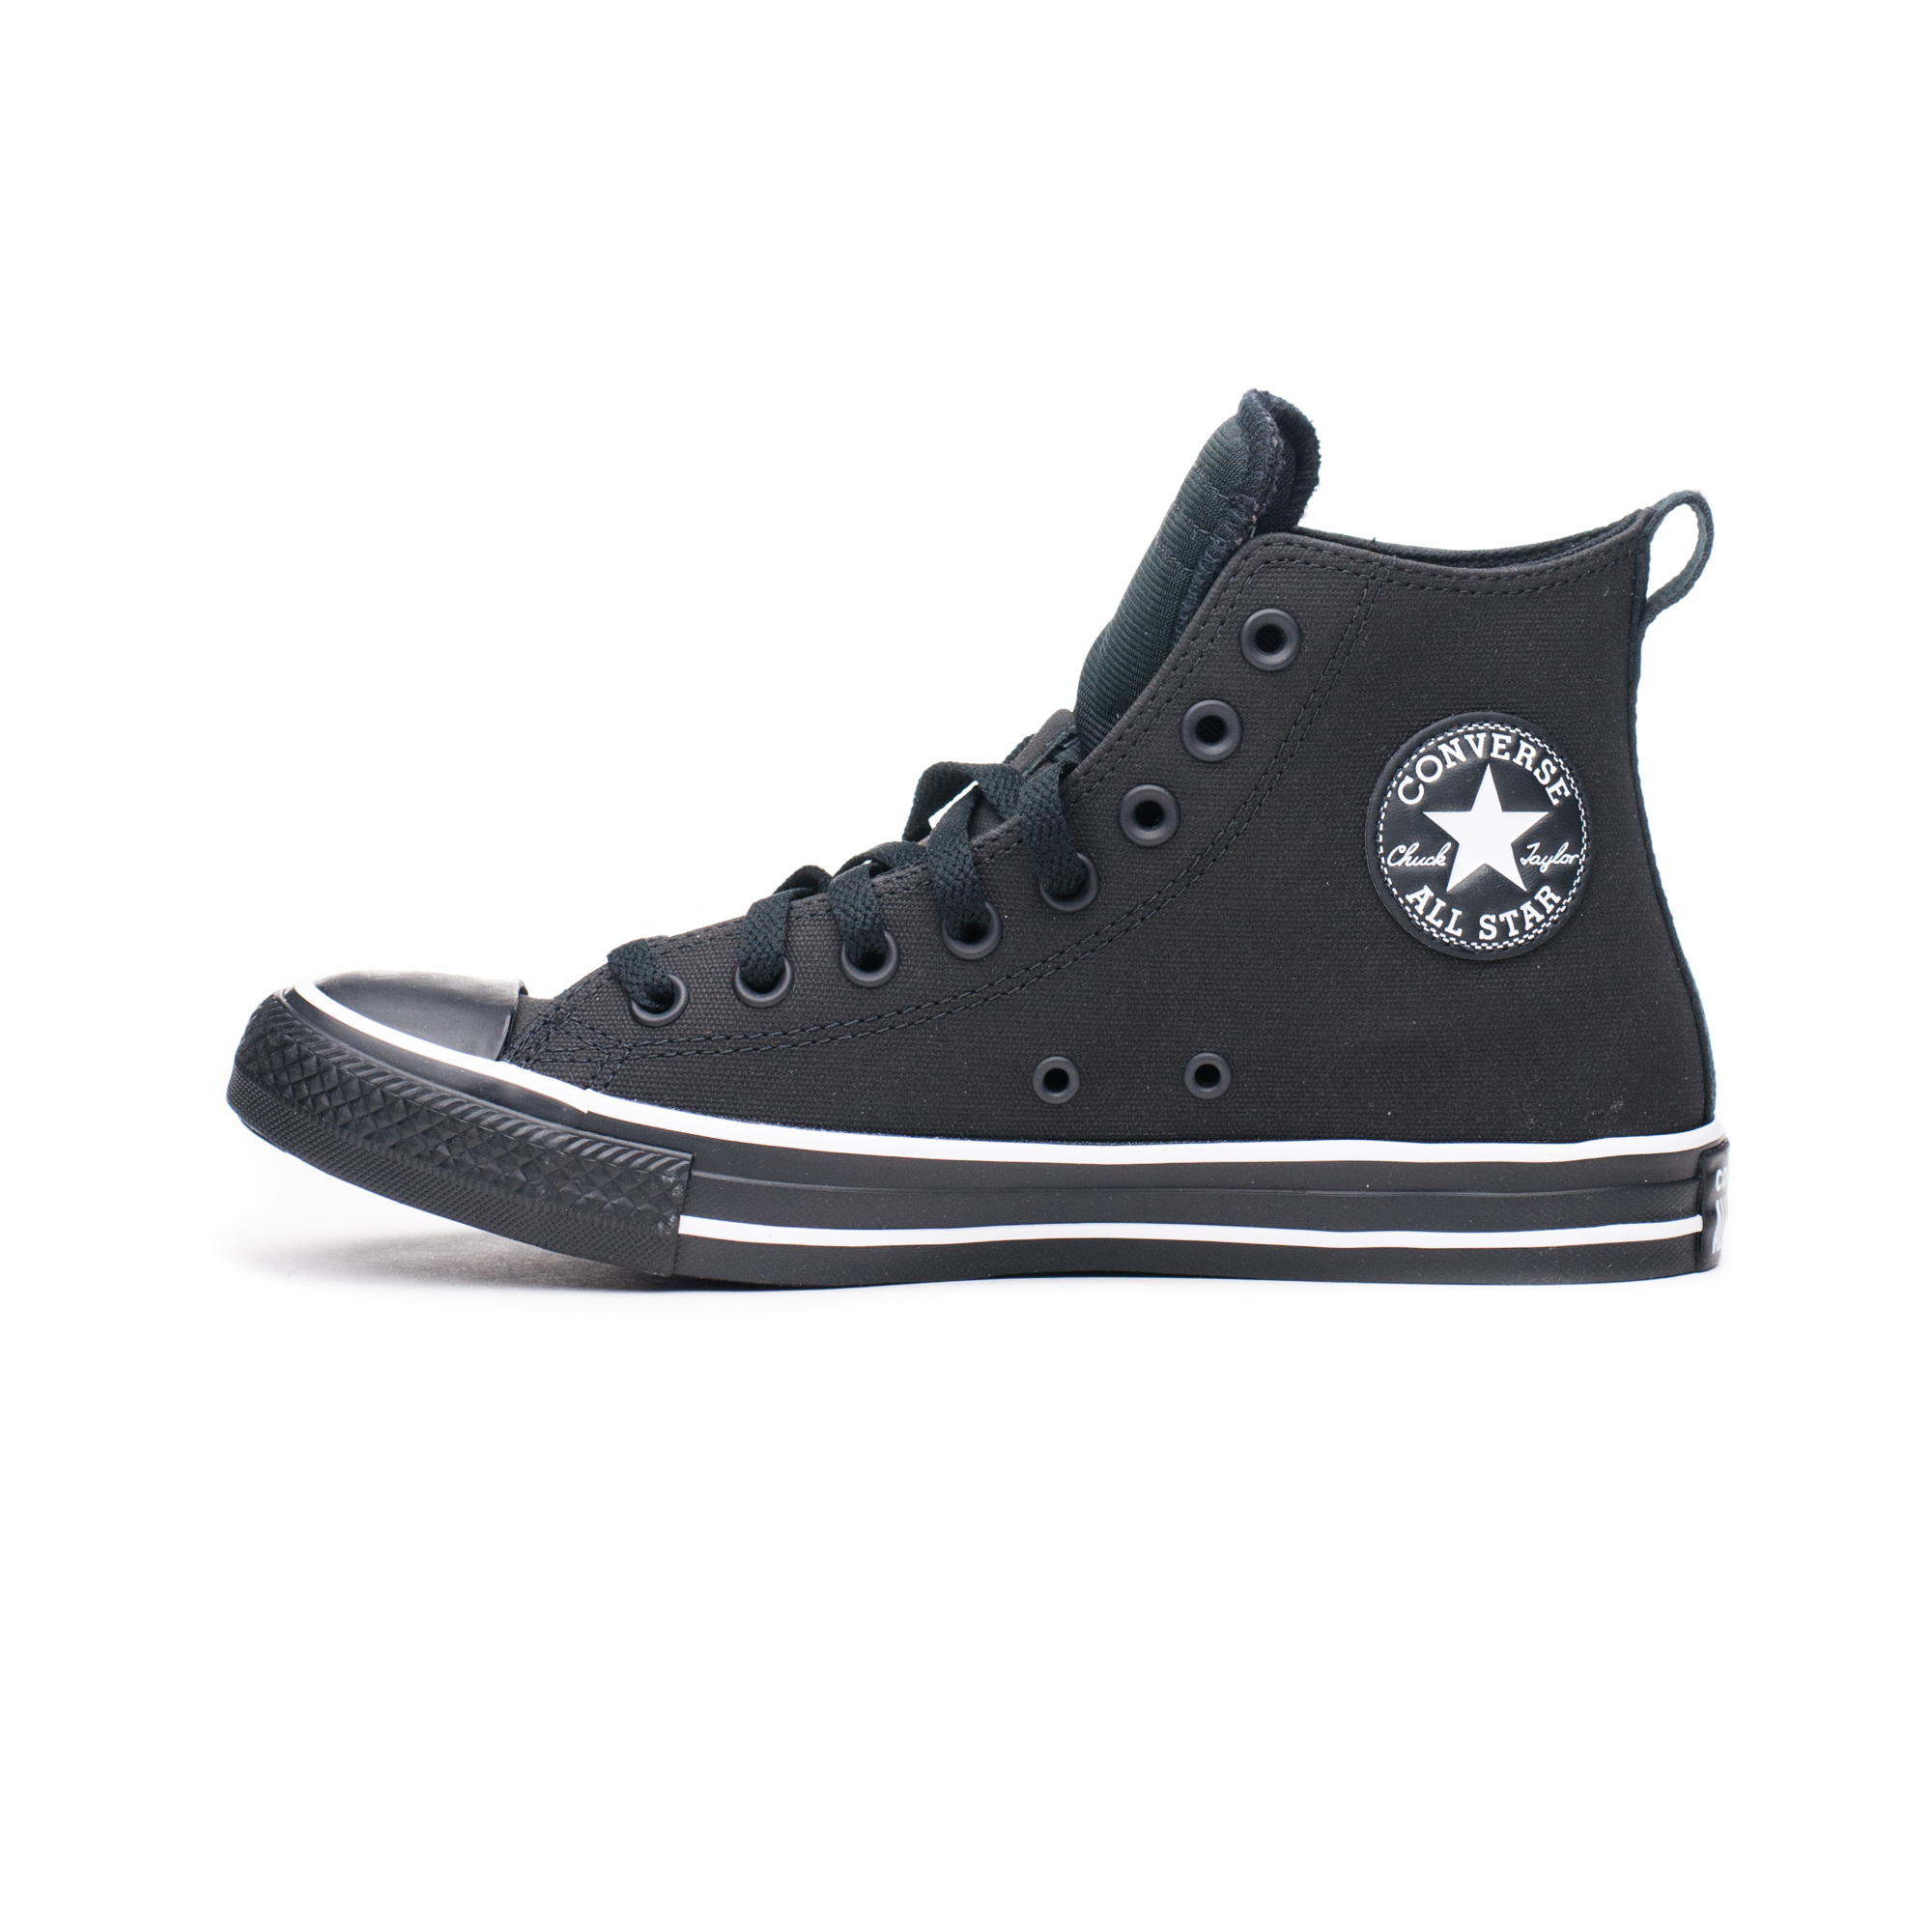 Кеди чоловічі Converse CHUCK TAYLOR ALL STAR PADDED